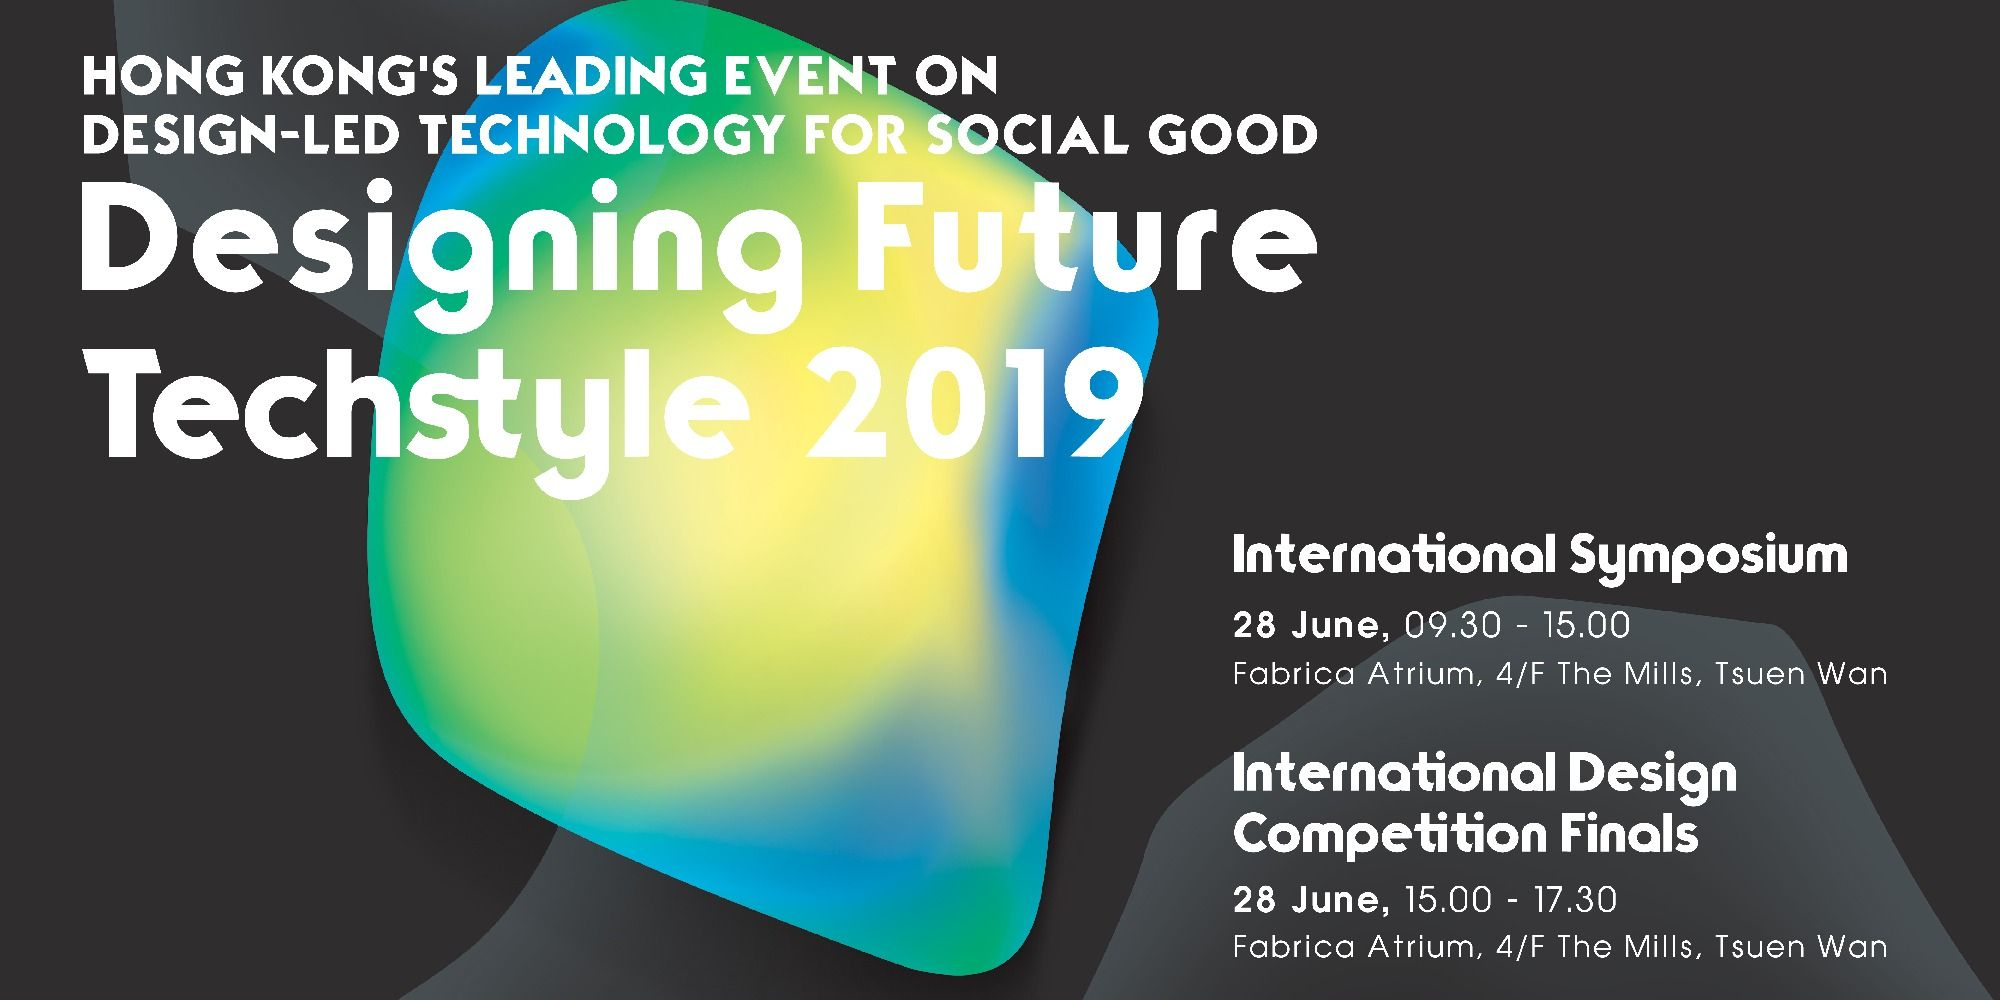 Designing Future Techstyle 2019 International Symposium and International Design Competition Finals